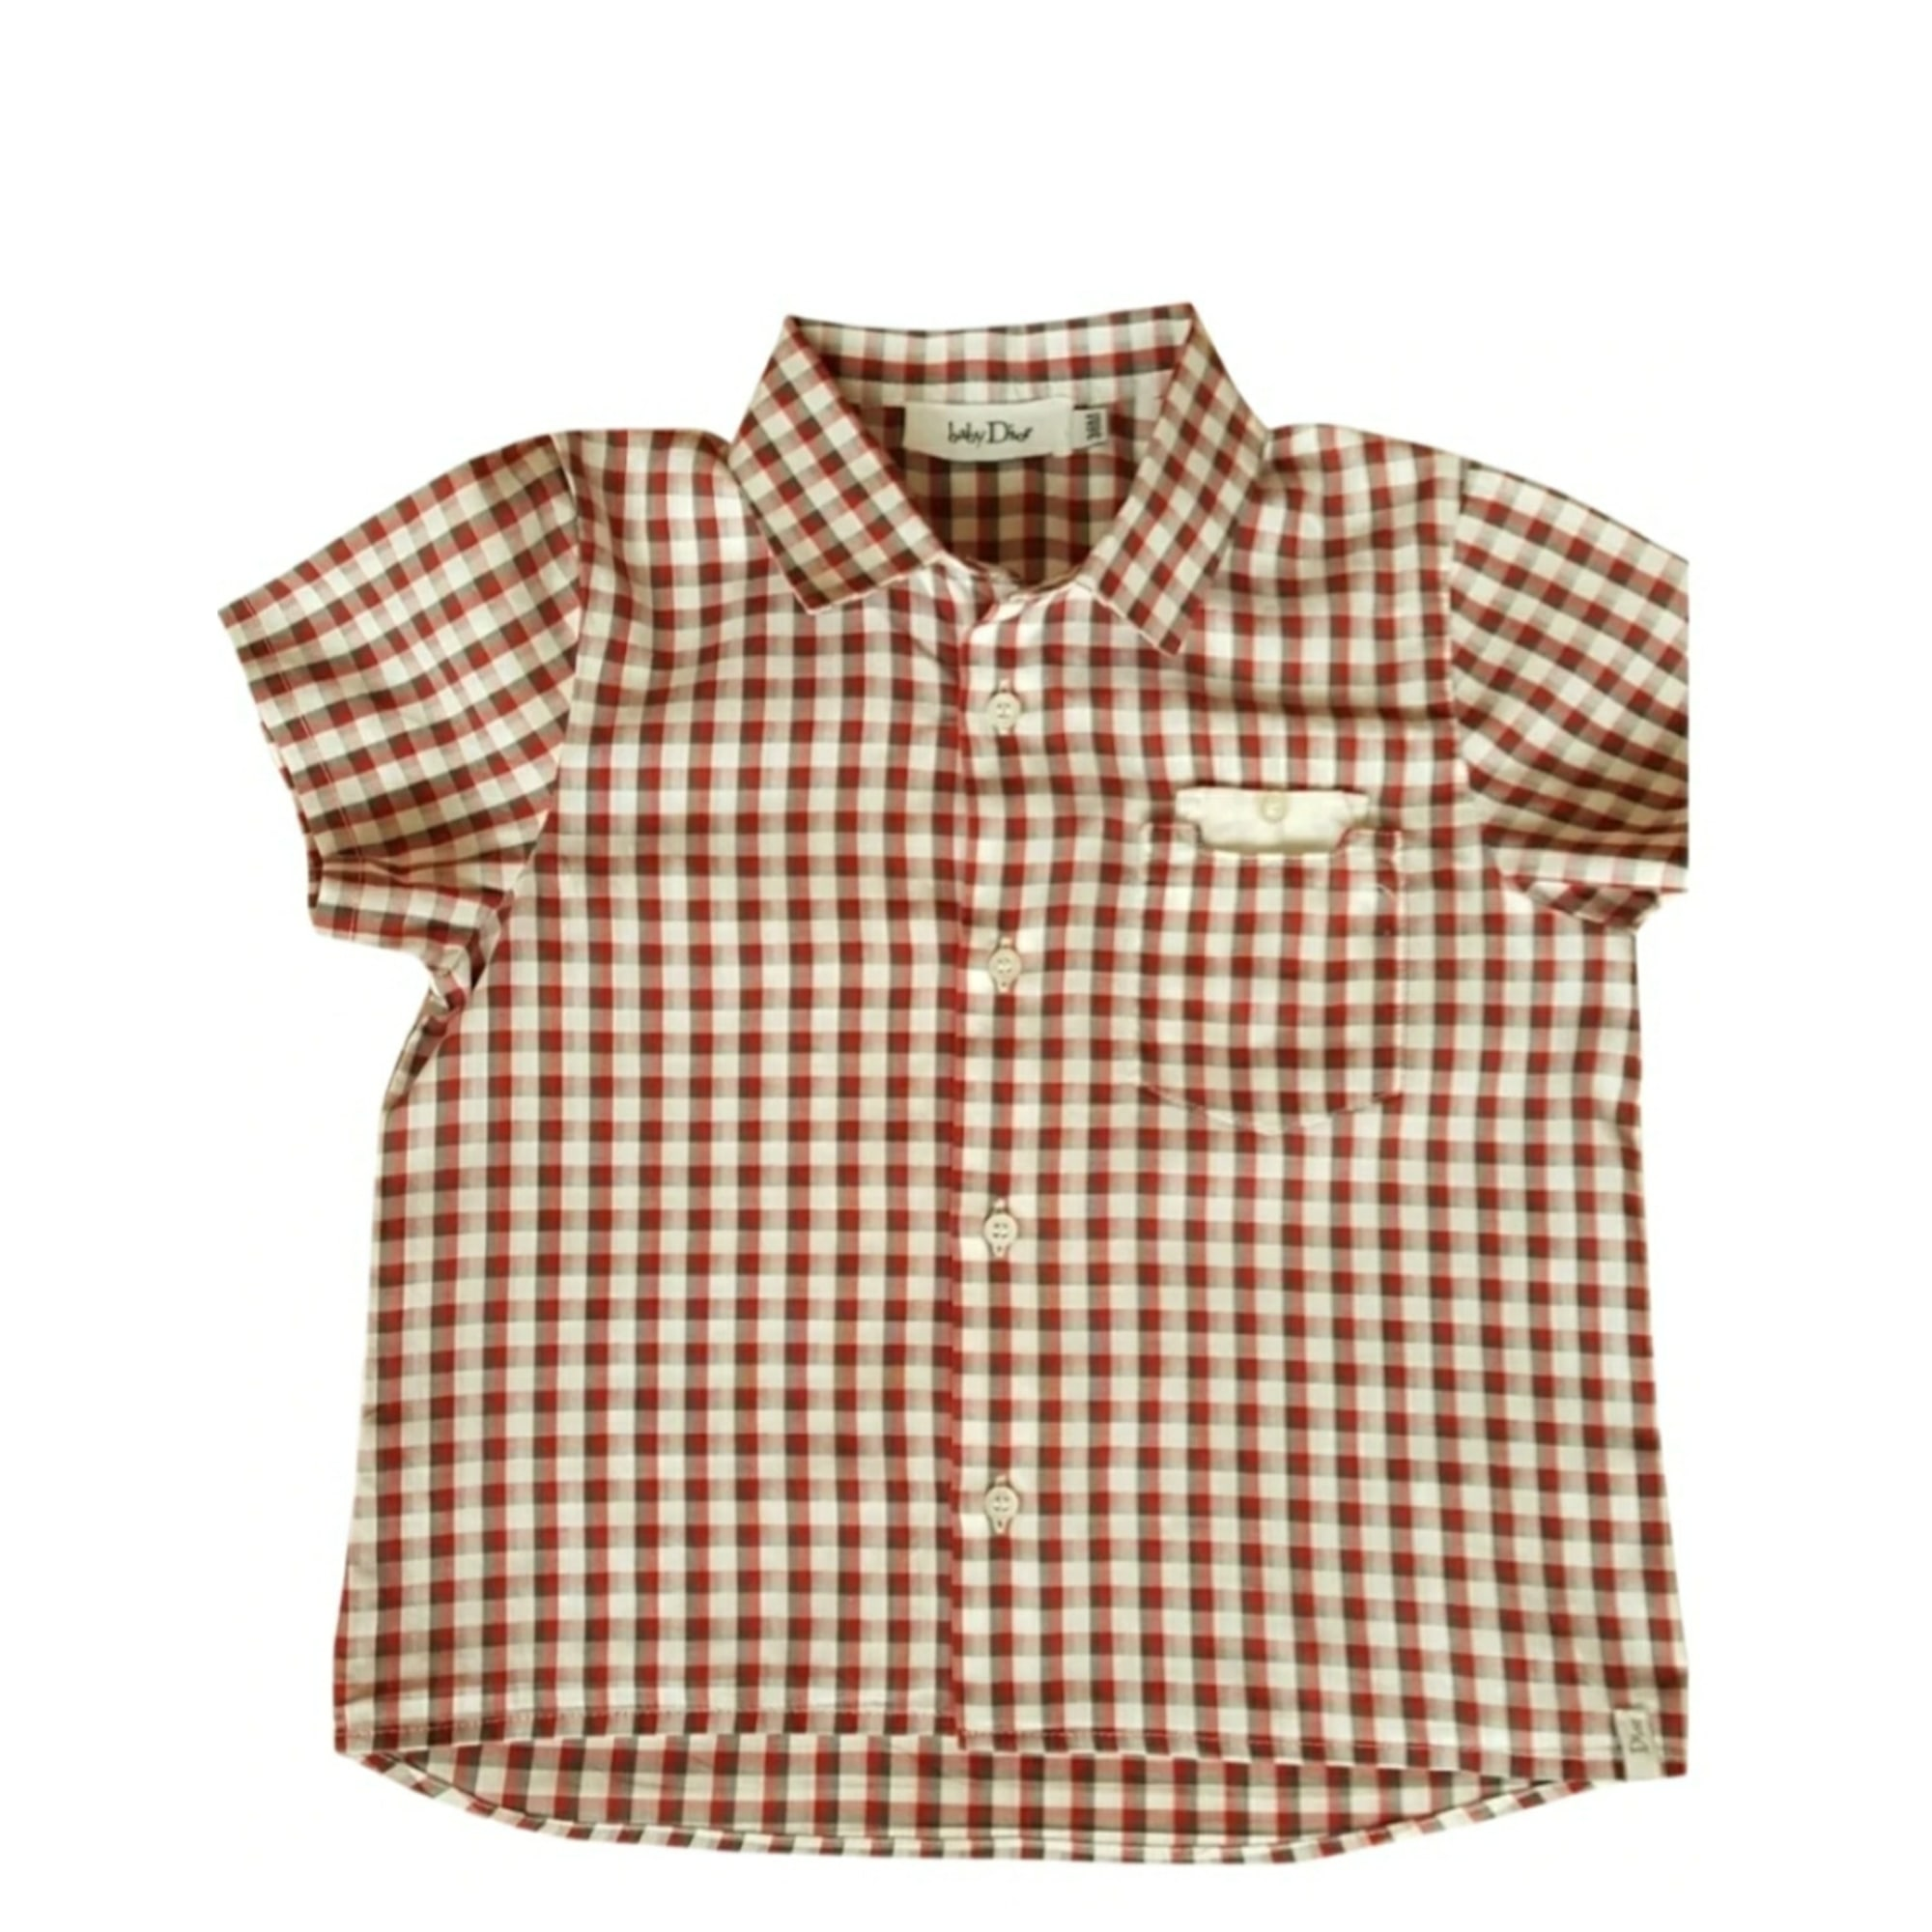 Short-sleeved Shirt BABY DIOR Blanc,rouge,gris